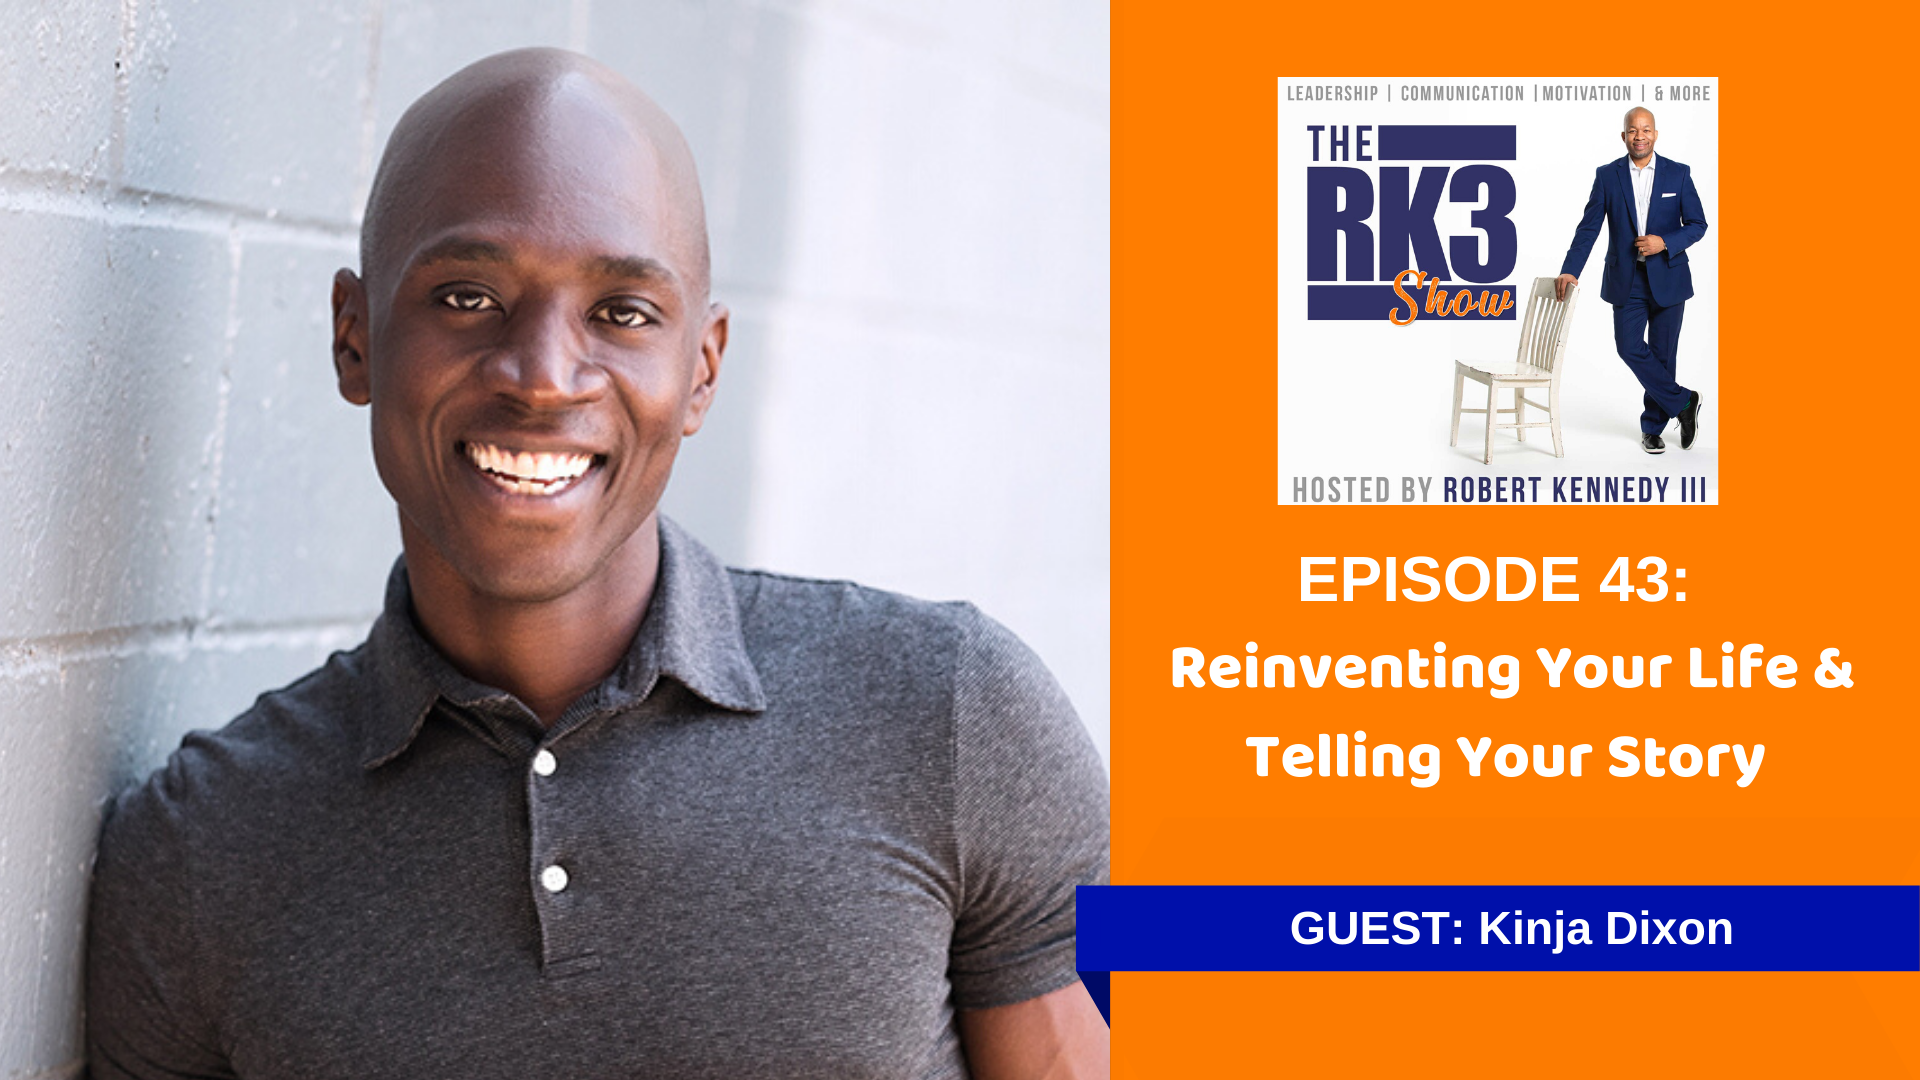 Epi 43 Reinventing Life and Telling your Story